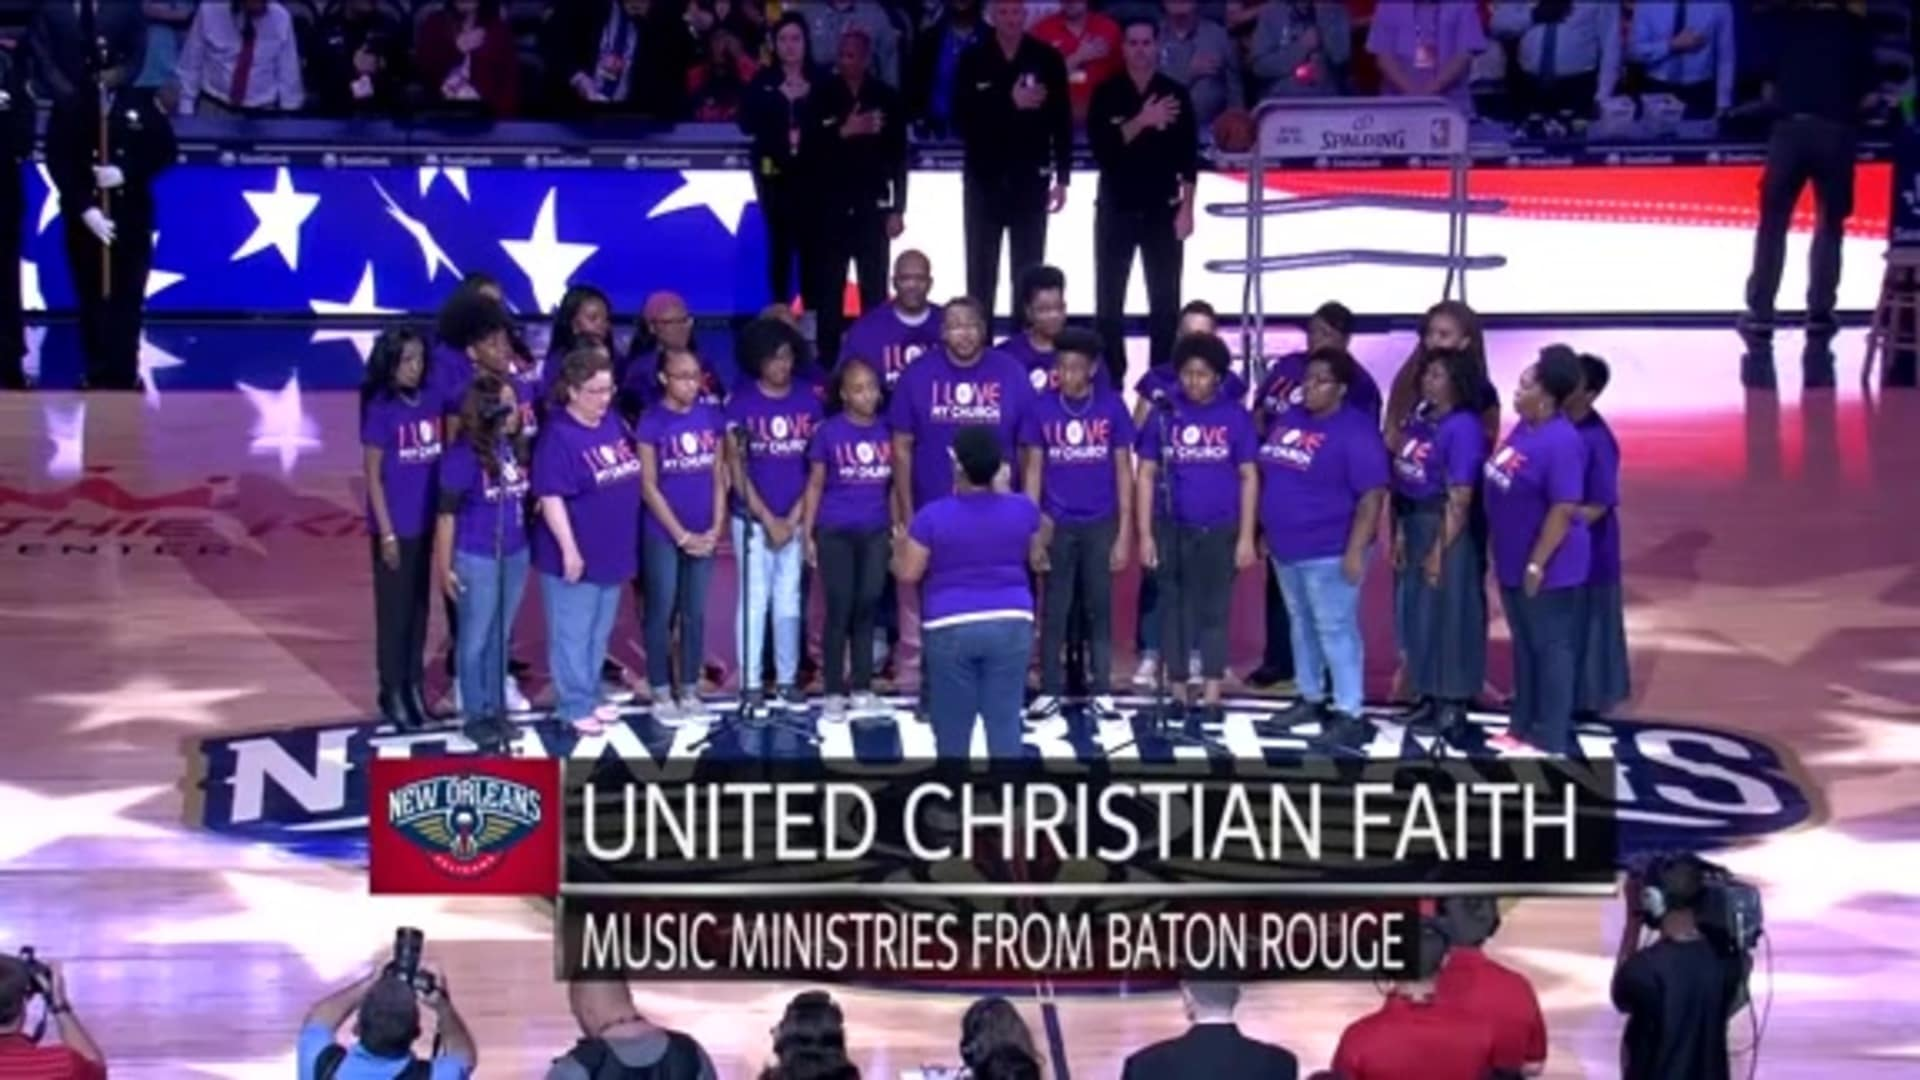 Entertainment: National Anthem performance by United Christian Faith Music Ministries – December 28 vs. Indiana Pacers